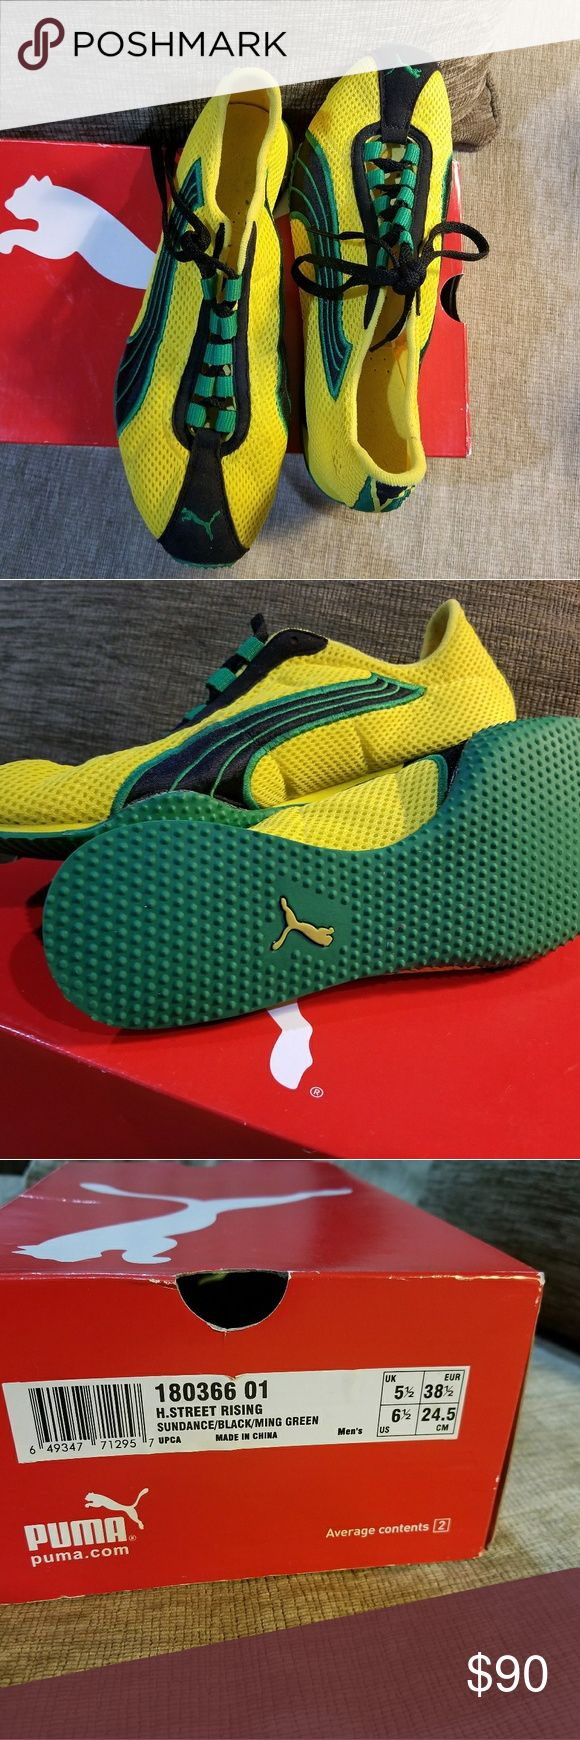 "Puma ""Jamaica"" flag colors, excellent condition PUMA H STREET RISING 180366 01 YELLOW GREEN shoes sneakers man  Color: yellow green Upper: mesh, fabric Outsole: rubber Puma Shoes Athletic Shoes"